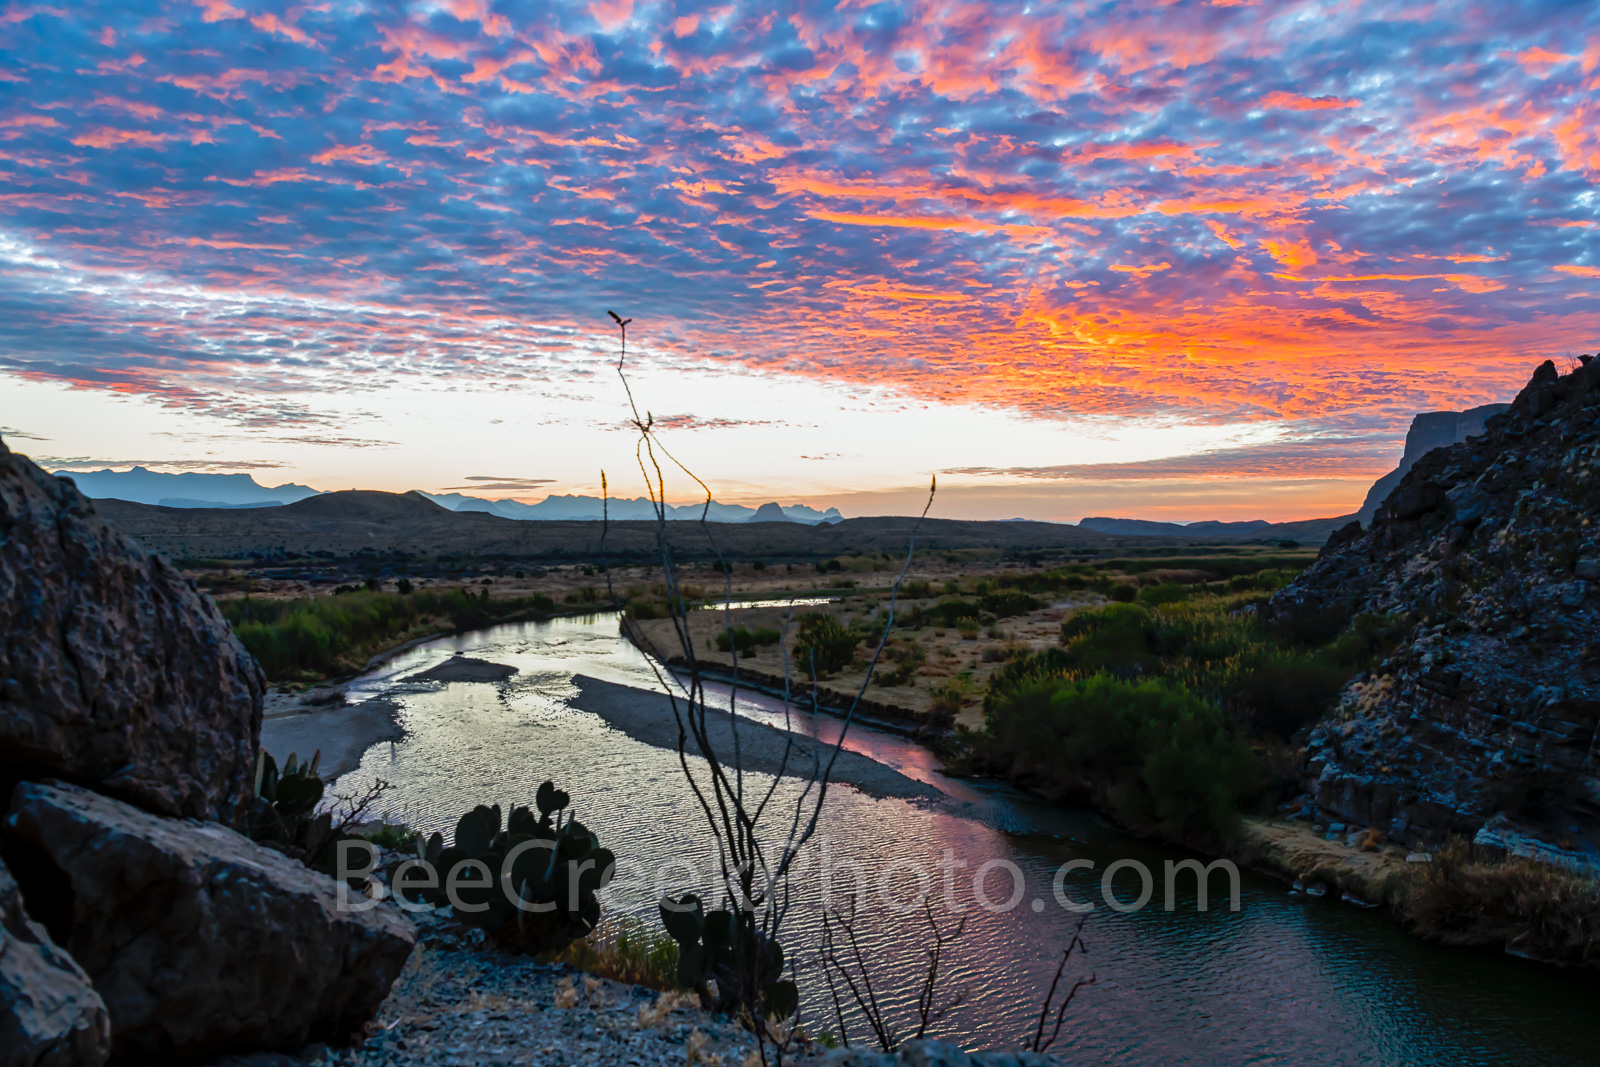 Santa Elena Canyon, sunrise, rays, Big Bend National Park, Rio Grande river, down stream, gulf, Mexico, Texas landscape, landscape, Big Bend, texan, texas, Chihuahuan Desert, cactus, cacti